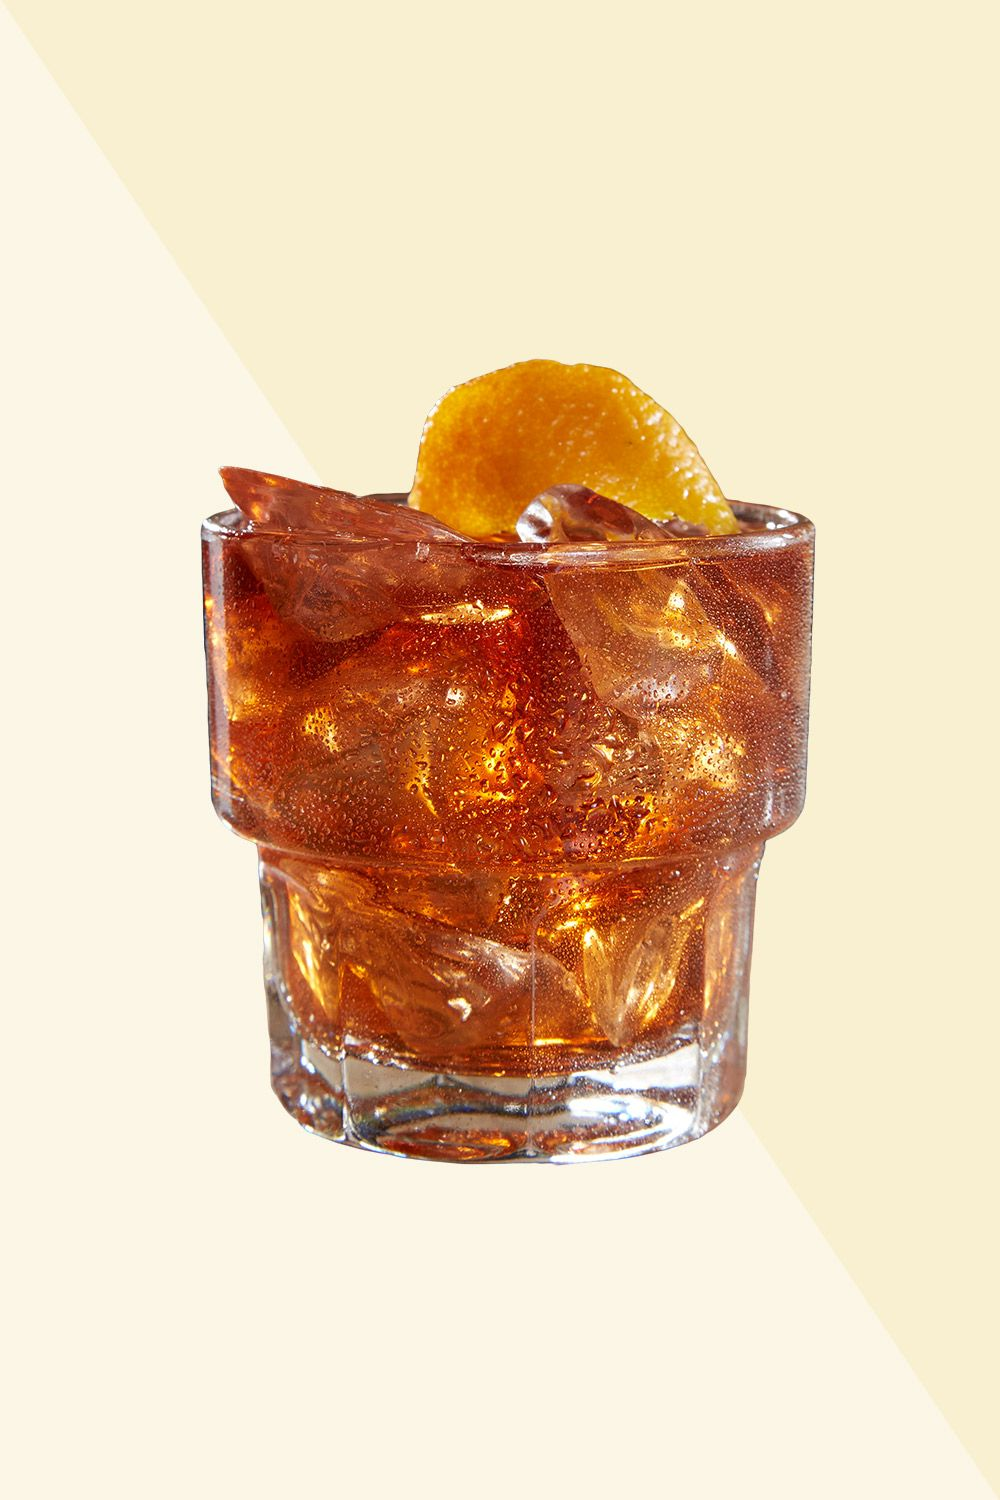 <p><strong>Ingredients:</strong></p><p>1 ½ oz. Bulleit Rye Whiskey </p><p>½ oz. Crown Royal Regal Apple Whisky </p><p>1/8 oz. Monin Sugar Cane </p><p>2 Dashes Angostura Bitters </p><p>Orange Peel Garnish</p><p><strong>Directions:</strong></p><p>Pour ingredients into 14 oz Pint mixing glass and add ice. Stir for 20 to 25 seconds, then strain over fresh ice into rocks glass. Garnish with an orange peel. </p><p><em>Courtesy Tilted Kilt</em><br></p>